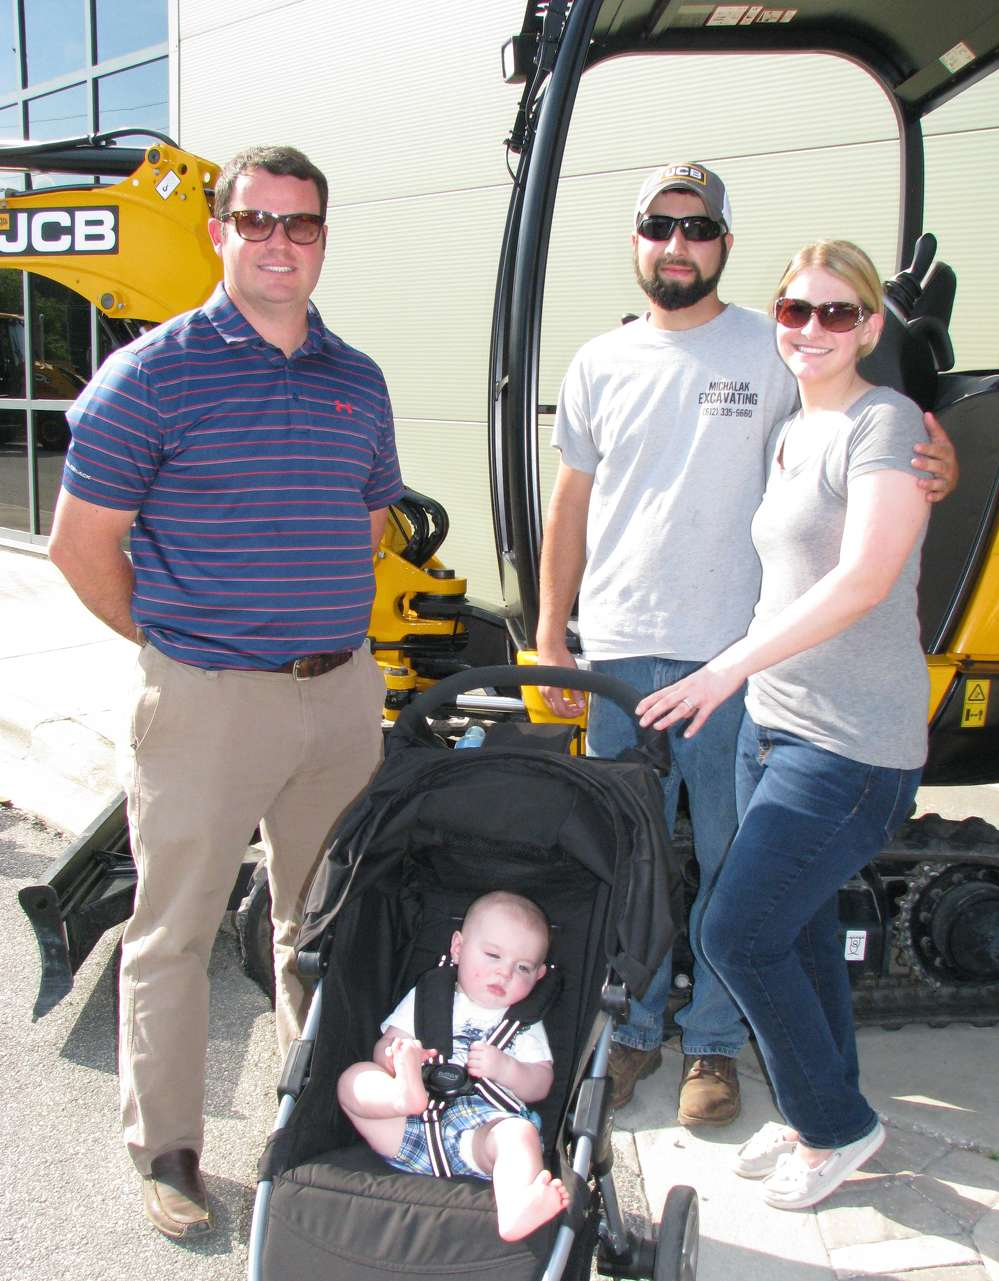 (L-R): Tony Davis, Low Country JCB salesman, talks with Brad and Gina Michalak, both of Michalak Excavating, Guyton, Ga., and the next generation owner, Jace Michalak.